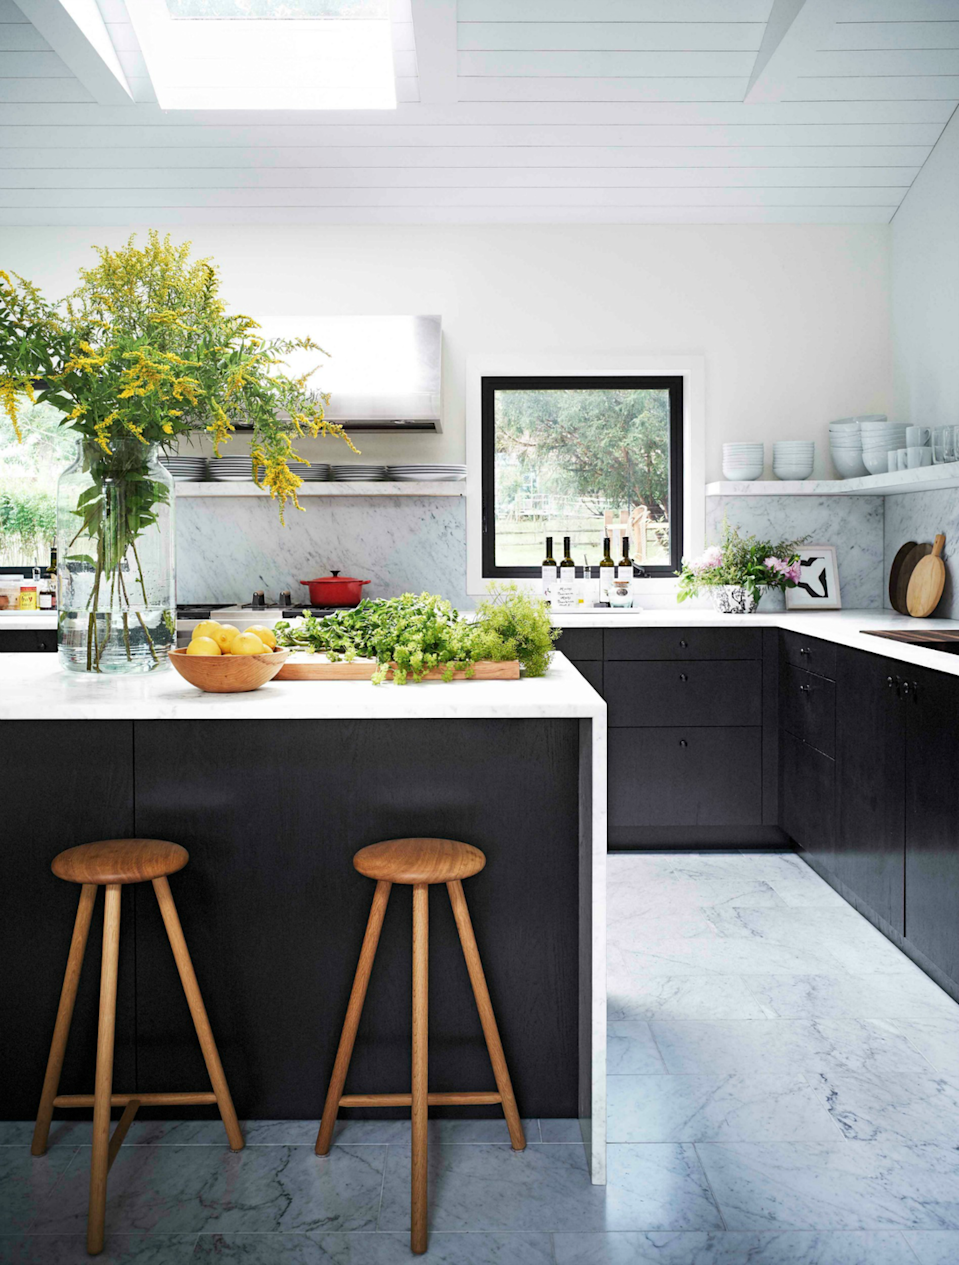 "<p>Don't be afraid to go marble crazy, from the backsplashes to the countertops and even the floors. The slabs of barely gray honed <a href=""https://www.housebeautiful.com/design-inspiration/house-tours/a25647648/maxwell-ryan-apartment-therapy-founder-hamptons-house-tour/"" rel=""nofollow noopener"" target=""_blank"" data-ylk=""slk:Carrara marble"" class=""link rapid-noclick-resp"">Carrara marble</a> covering the kitchen of <a href=""https://www.housebeautiful.com/design-inspiration/house-tours/a25647648/maxwell-ryan-apartment-therapy-founder-hamptons-house-tour/"" rel=""nofollow noopener"" target=""_blank"" data-ylk=""slk:Maxwell Ryan's Hamptons home"" class=""link rapid-noclick-resp"">Maxwell Ryan's Hamptons home </a>make for a clean, airy look. </p>"